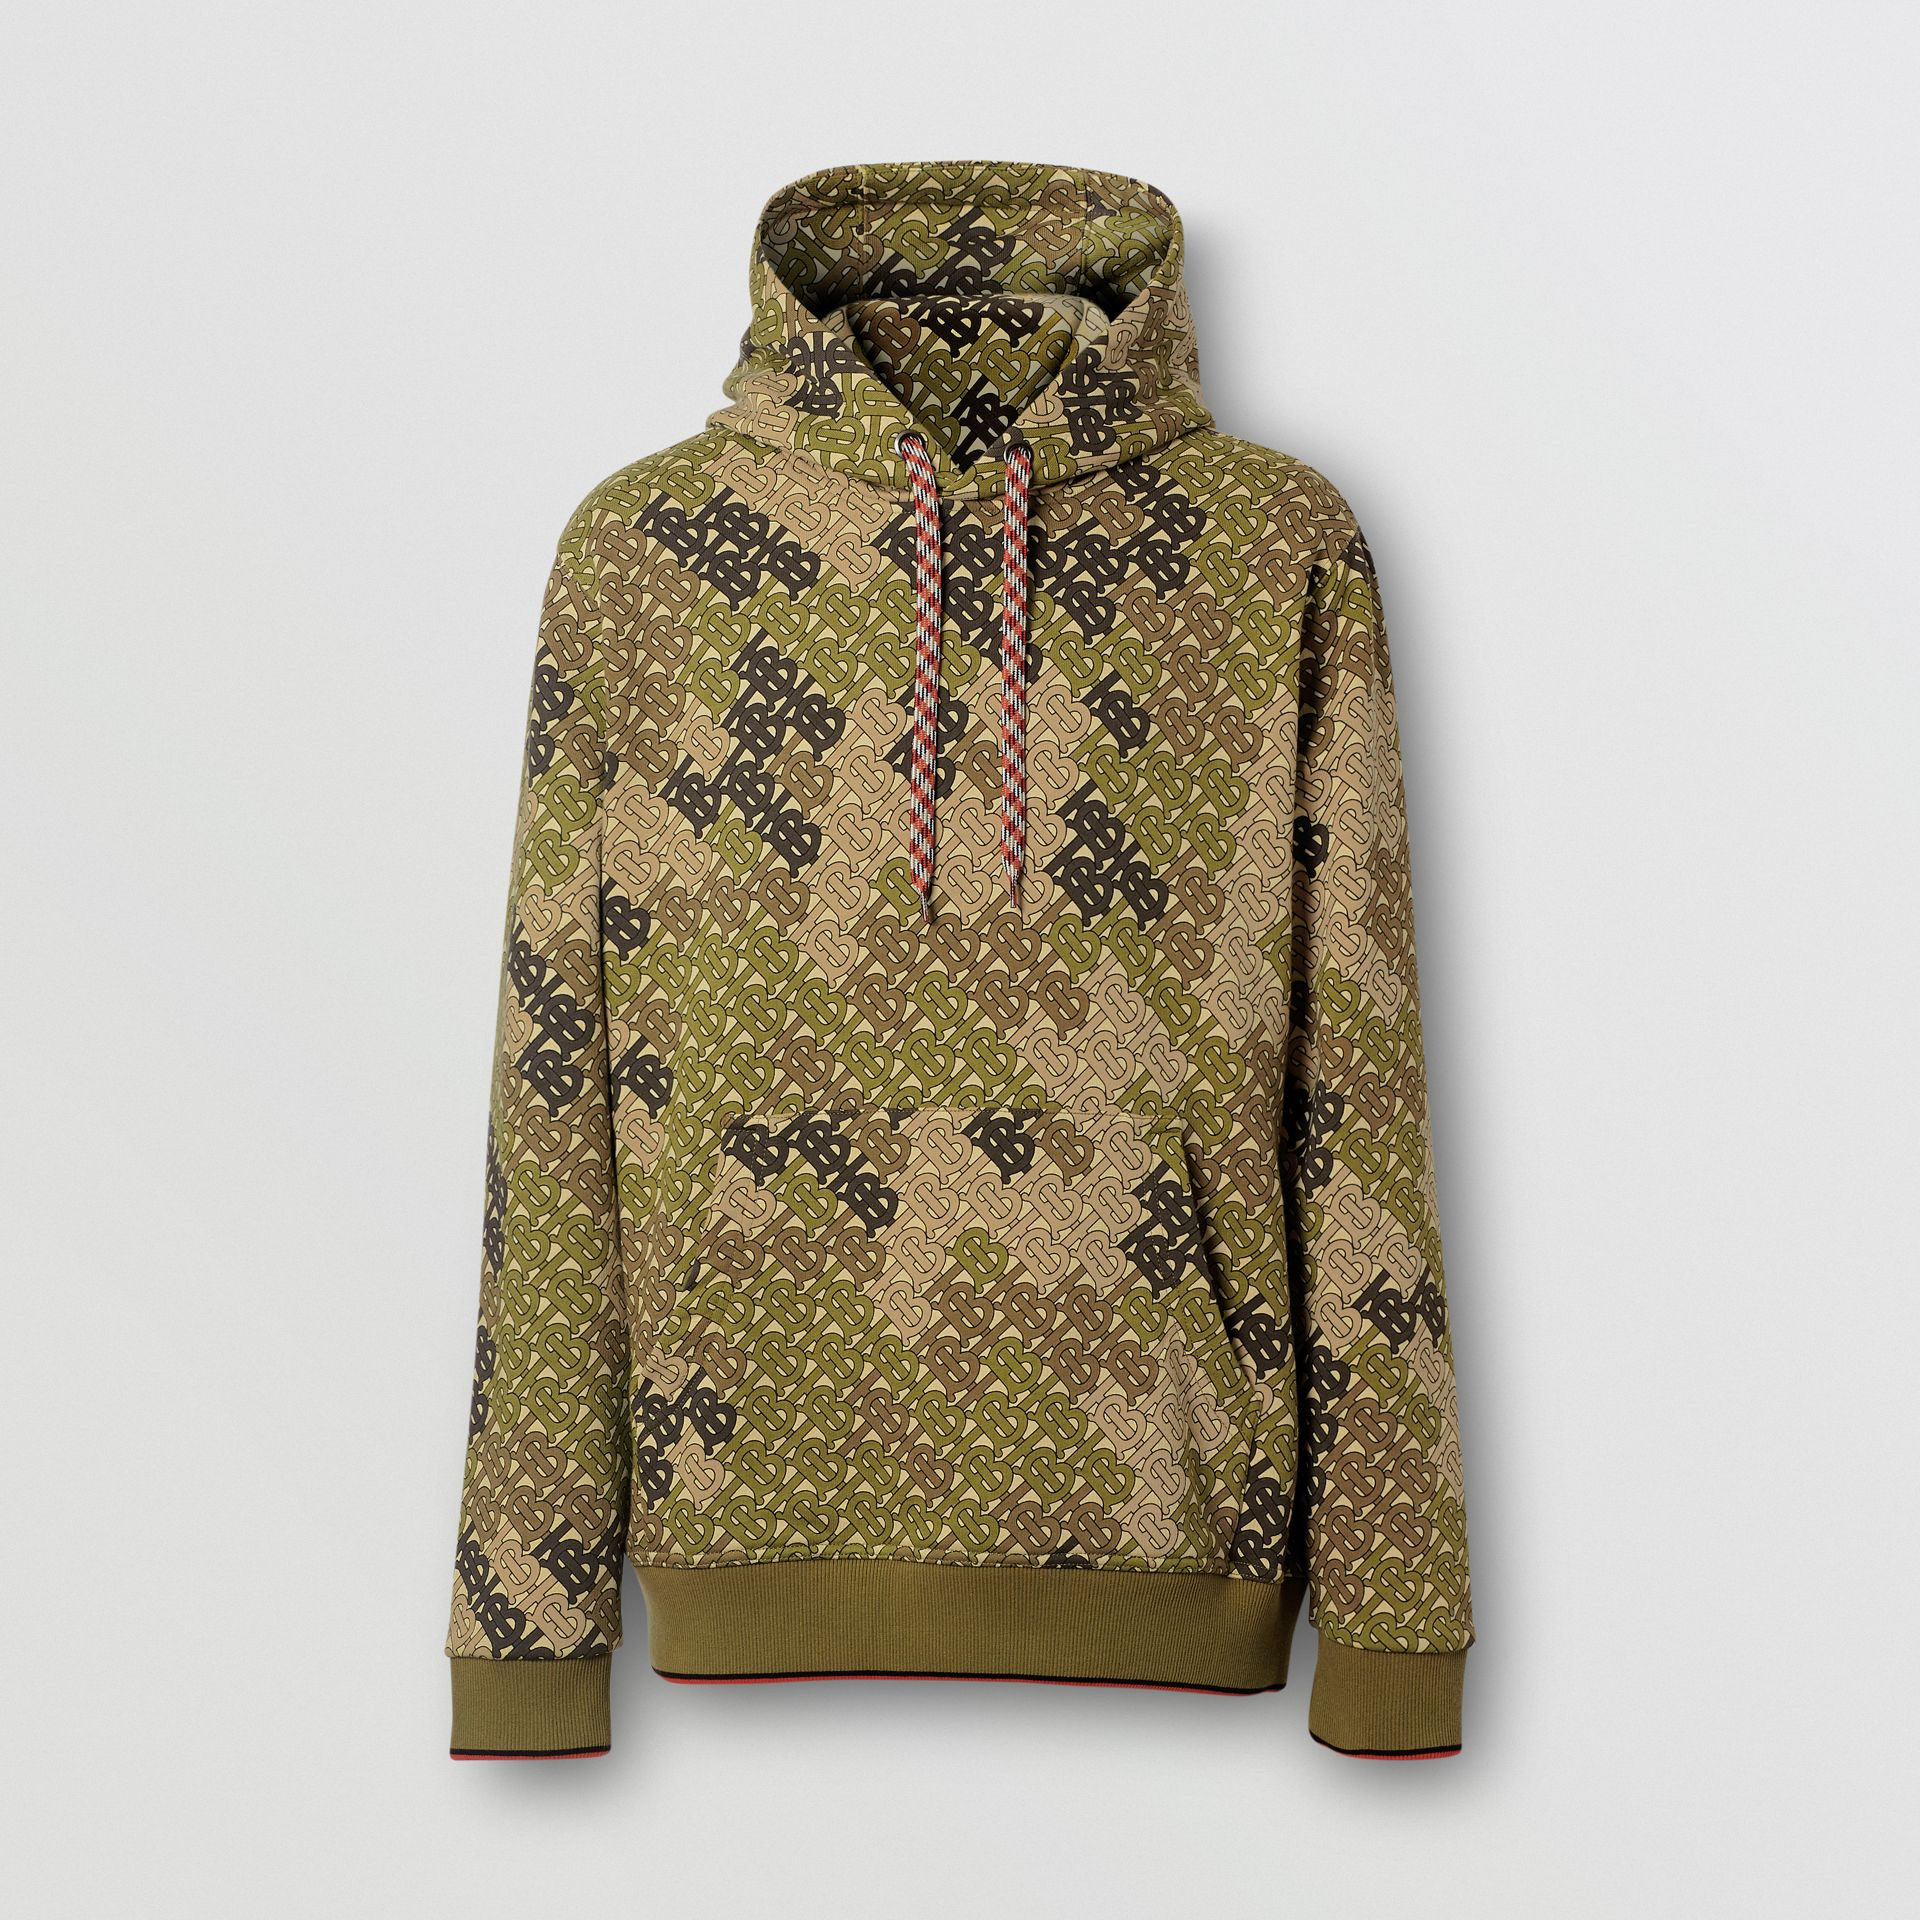 Sweat-shirt à capuche en coton Monogram (Vert Kaki) - Homme | Burberry Canada - photo de la galerie 3